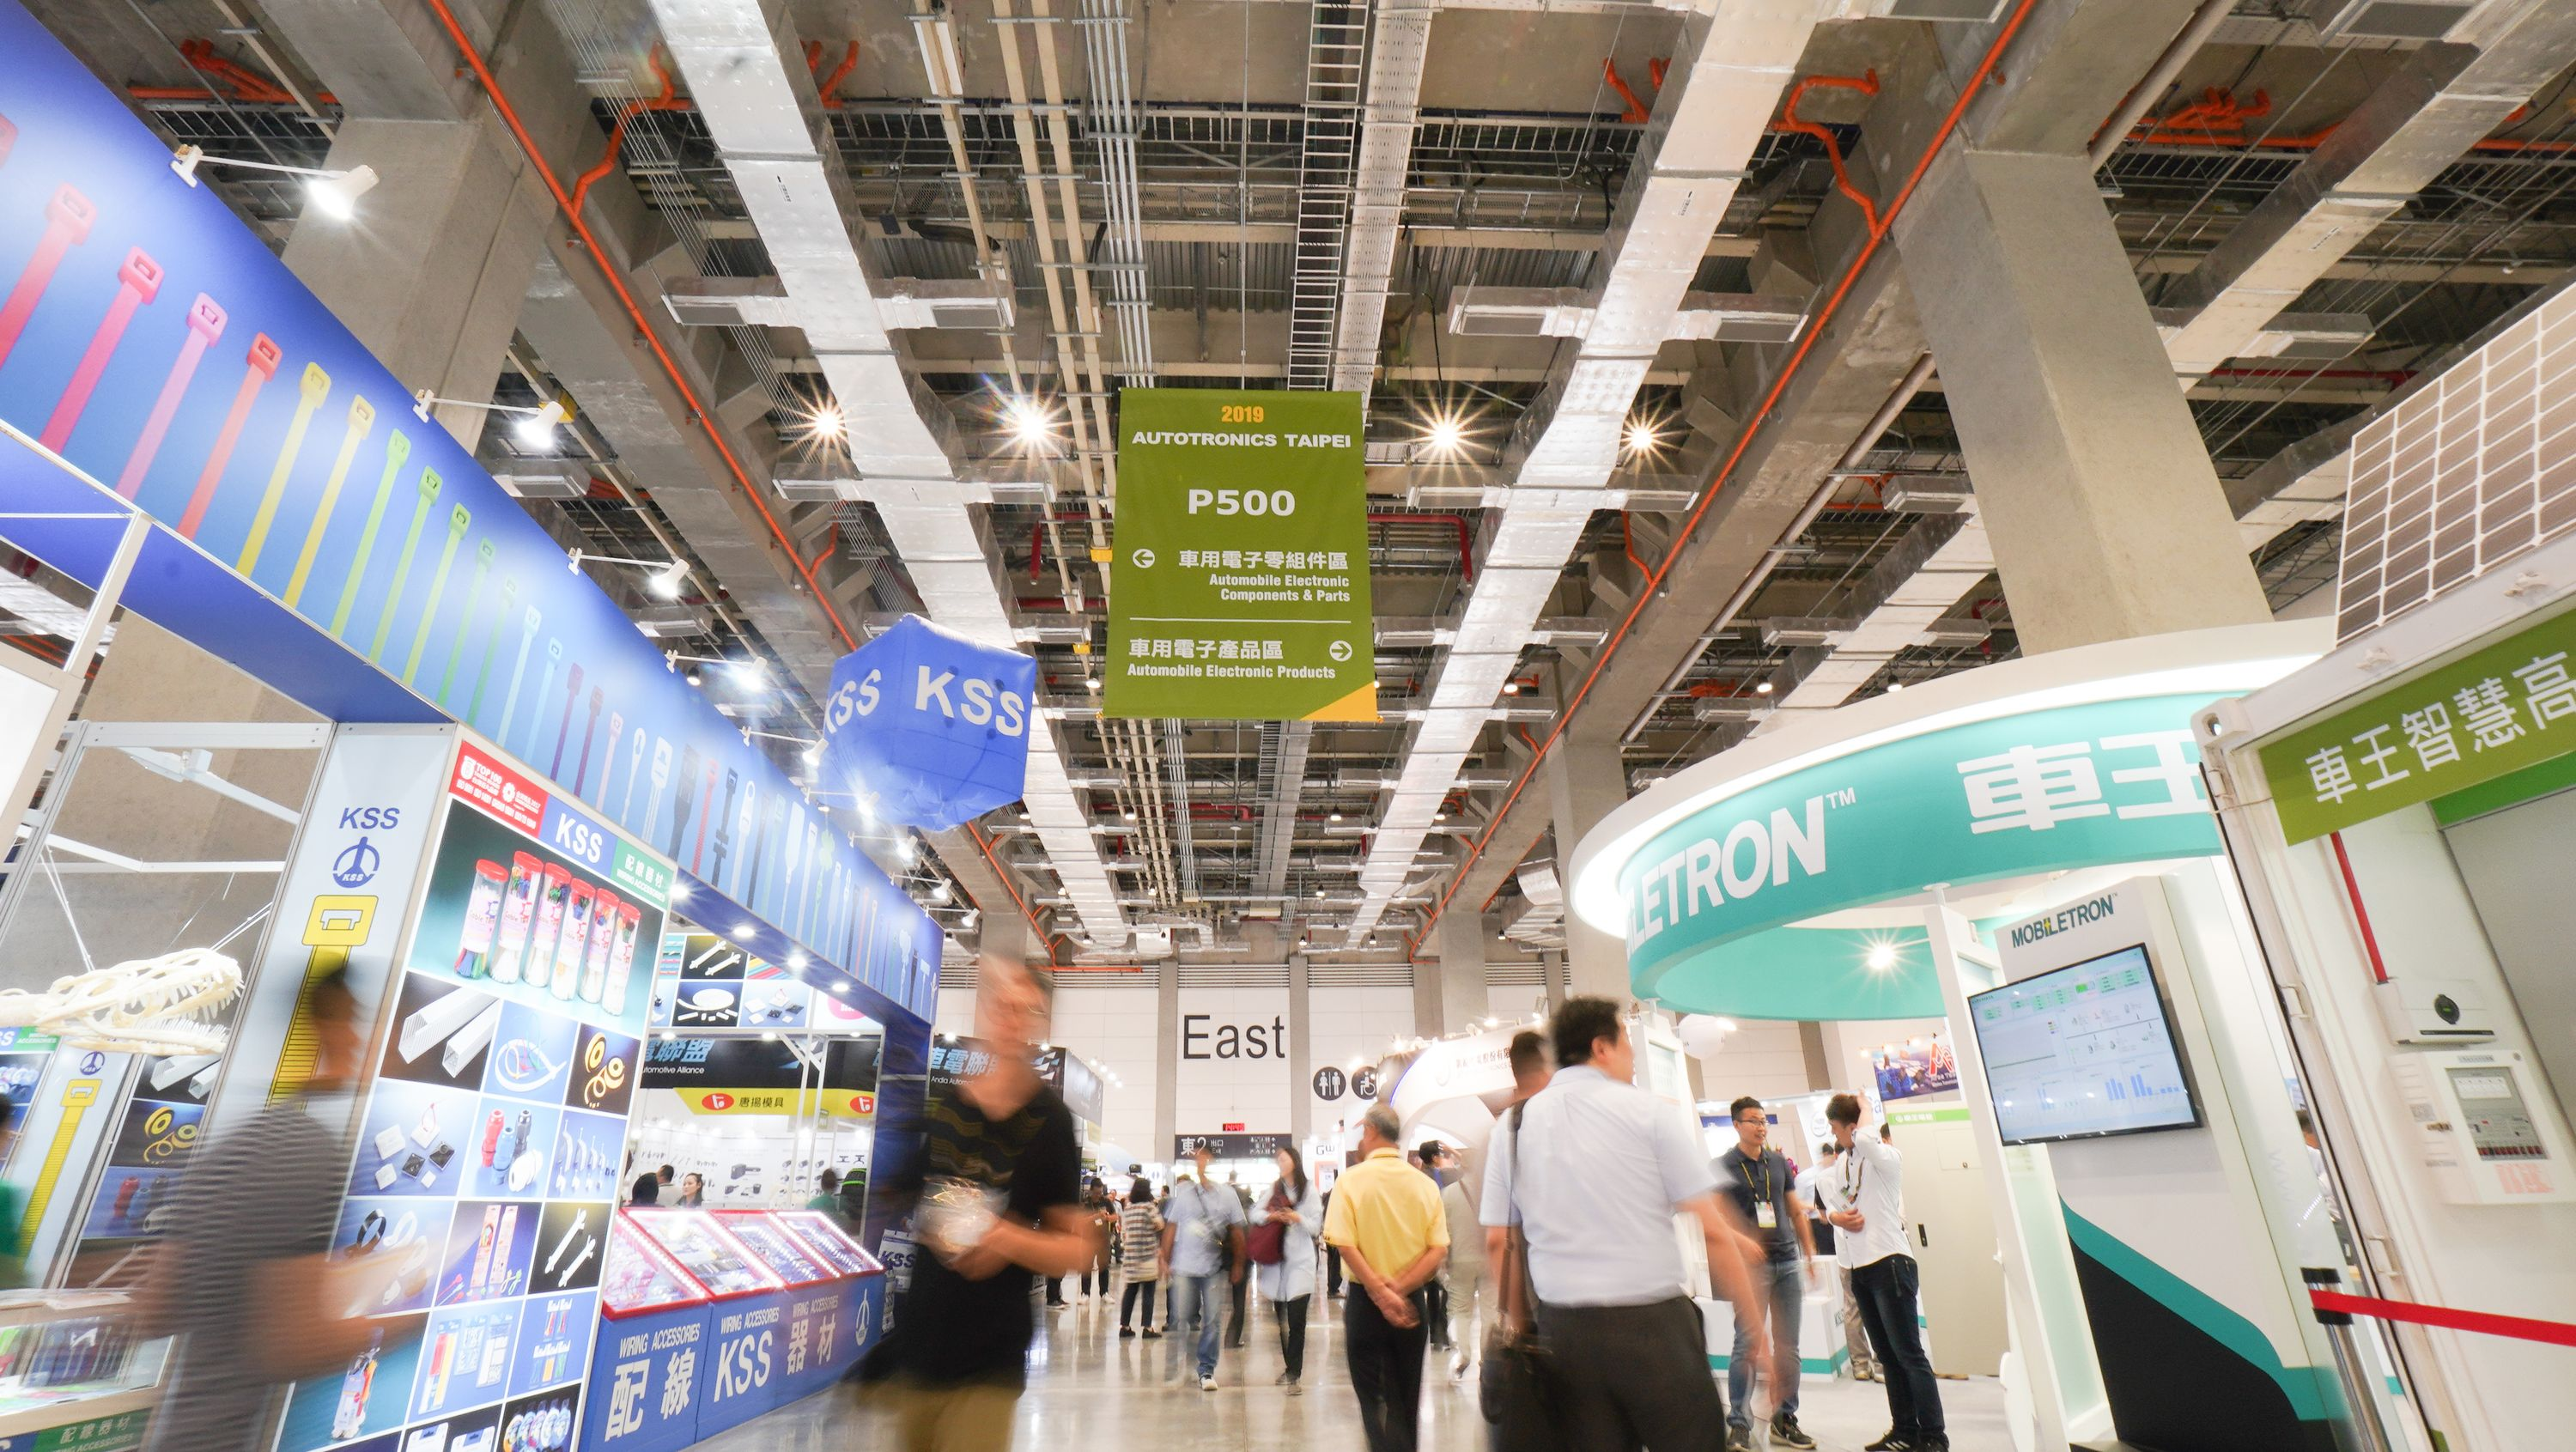 https://storage.googleapis.com/www.taiwantradeshow.com.tw/model/photo/AP/2019/PH00033936-name.jpg